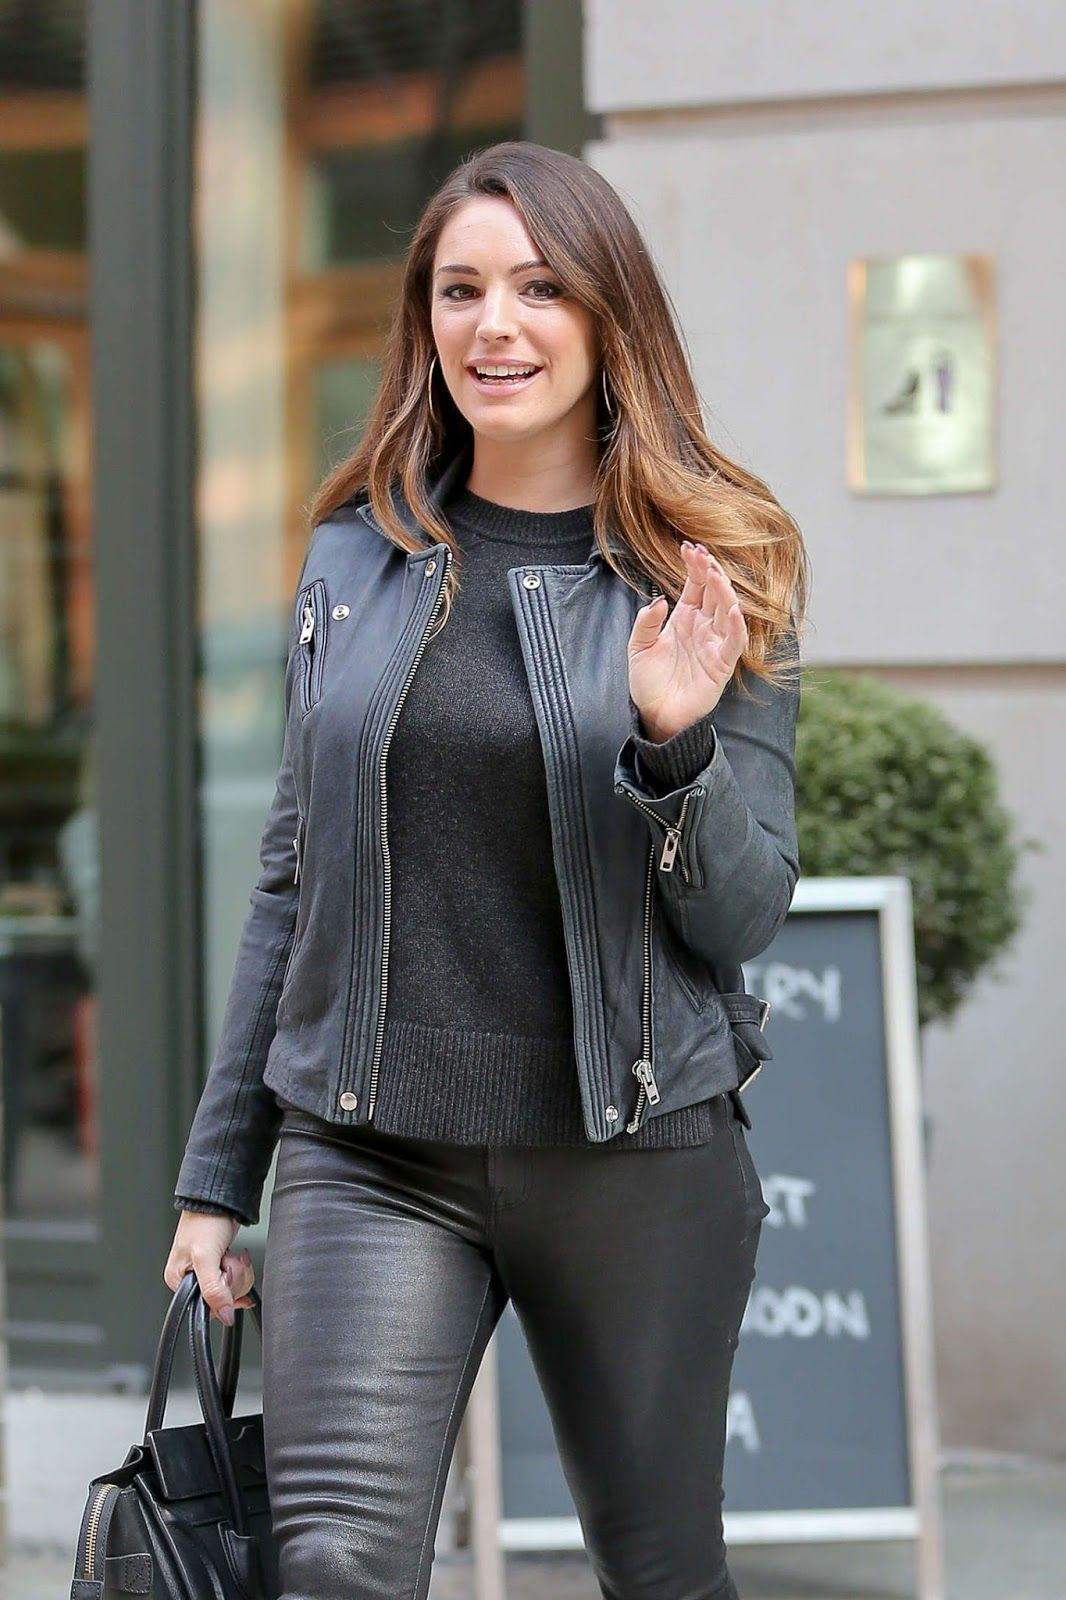 Kelly Brook in Leather Pants in New york city - Kelly Brook 2016 #leatherpantsoutfit